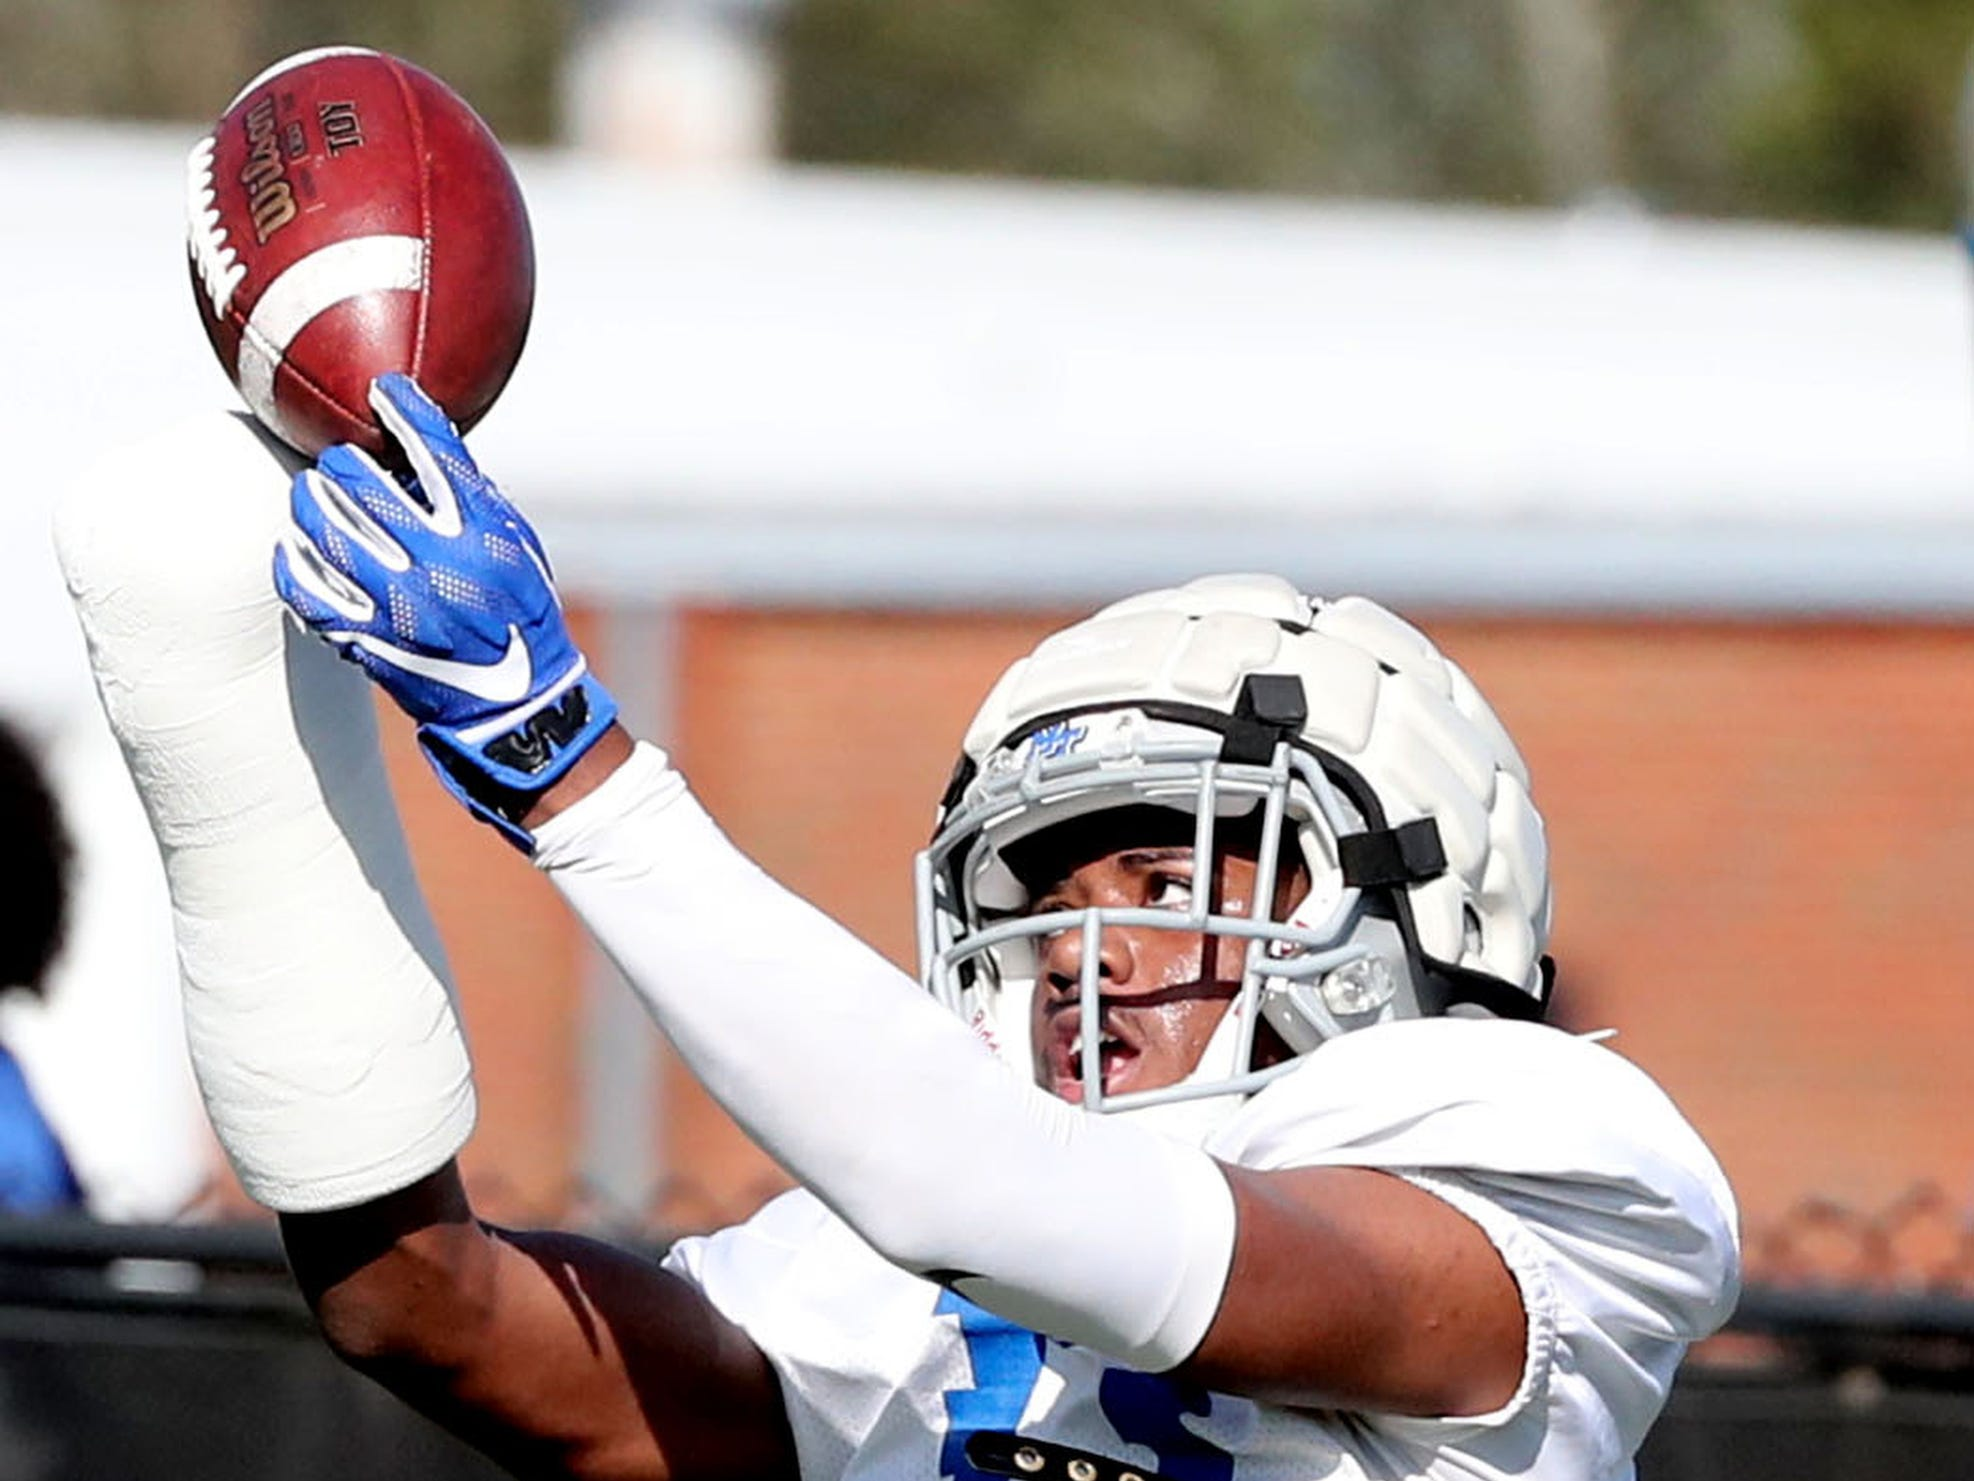 MTSU's safety Decorian Patterson (33) grabs the ball during a drill at MTSU's football practice, in Murfreesboro on Tuesday April 9, 2019.